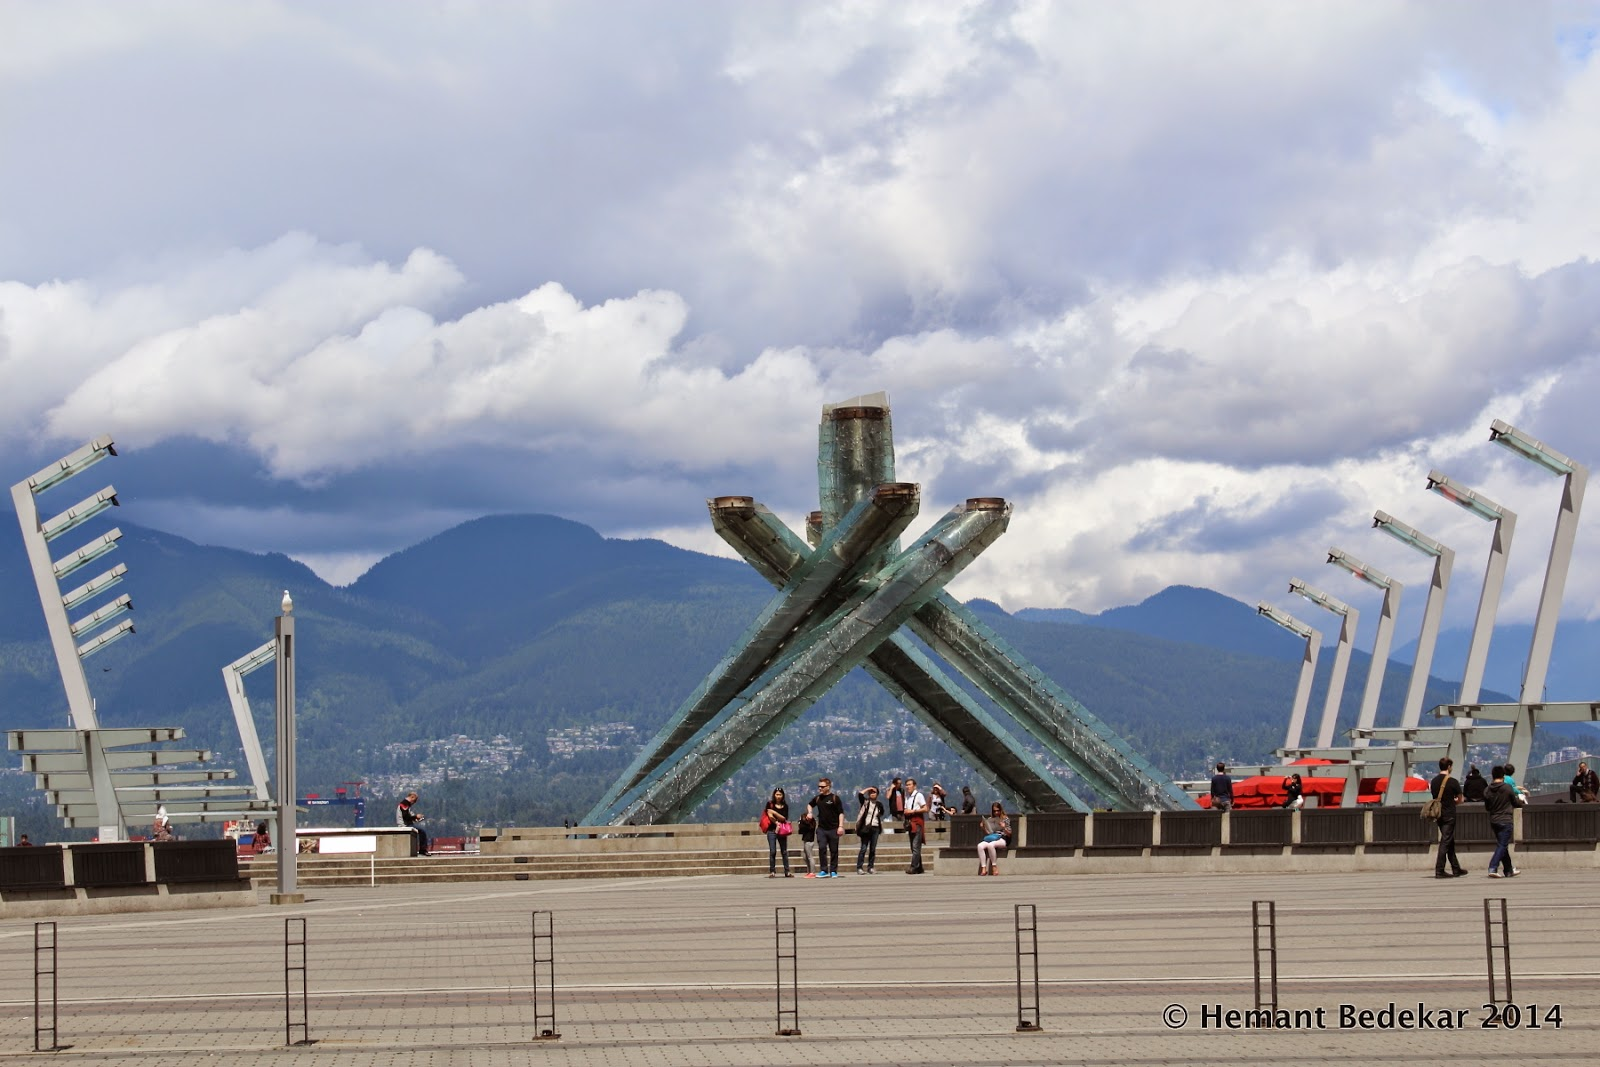 Vancouver Winter Olympics 2010 Cauldron in Coal Harbour